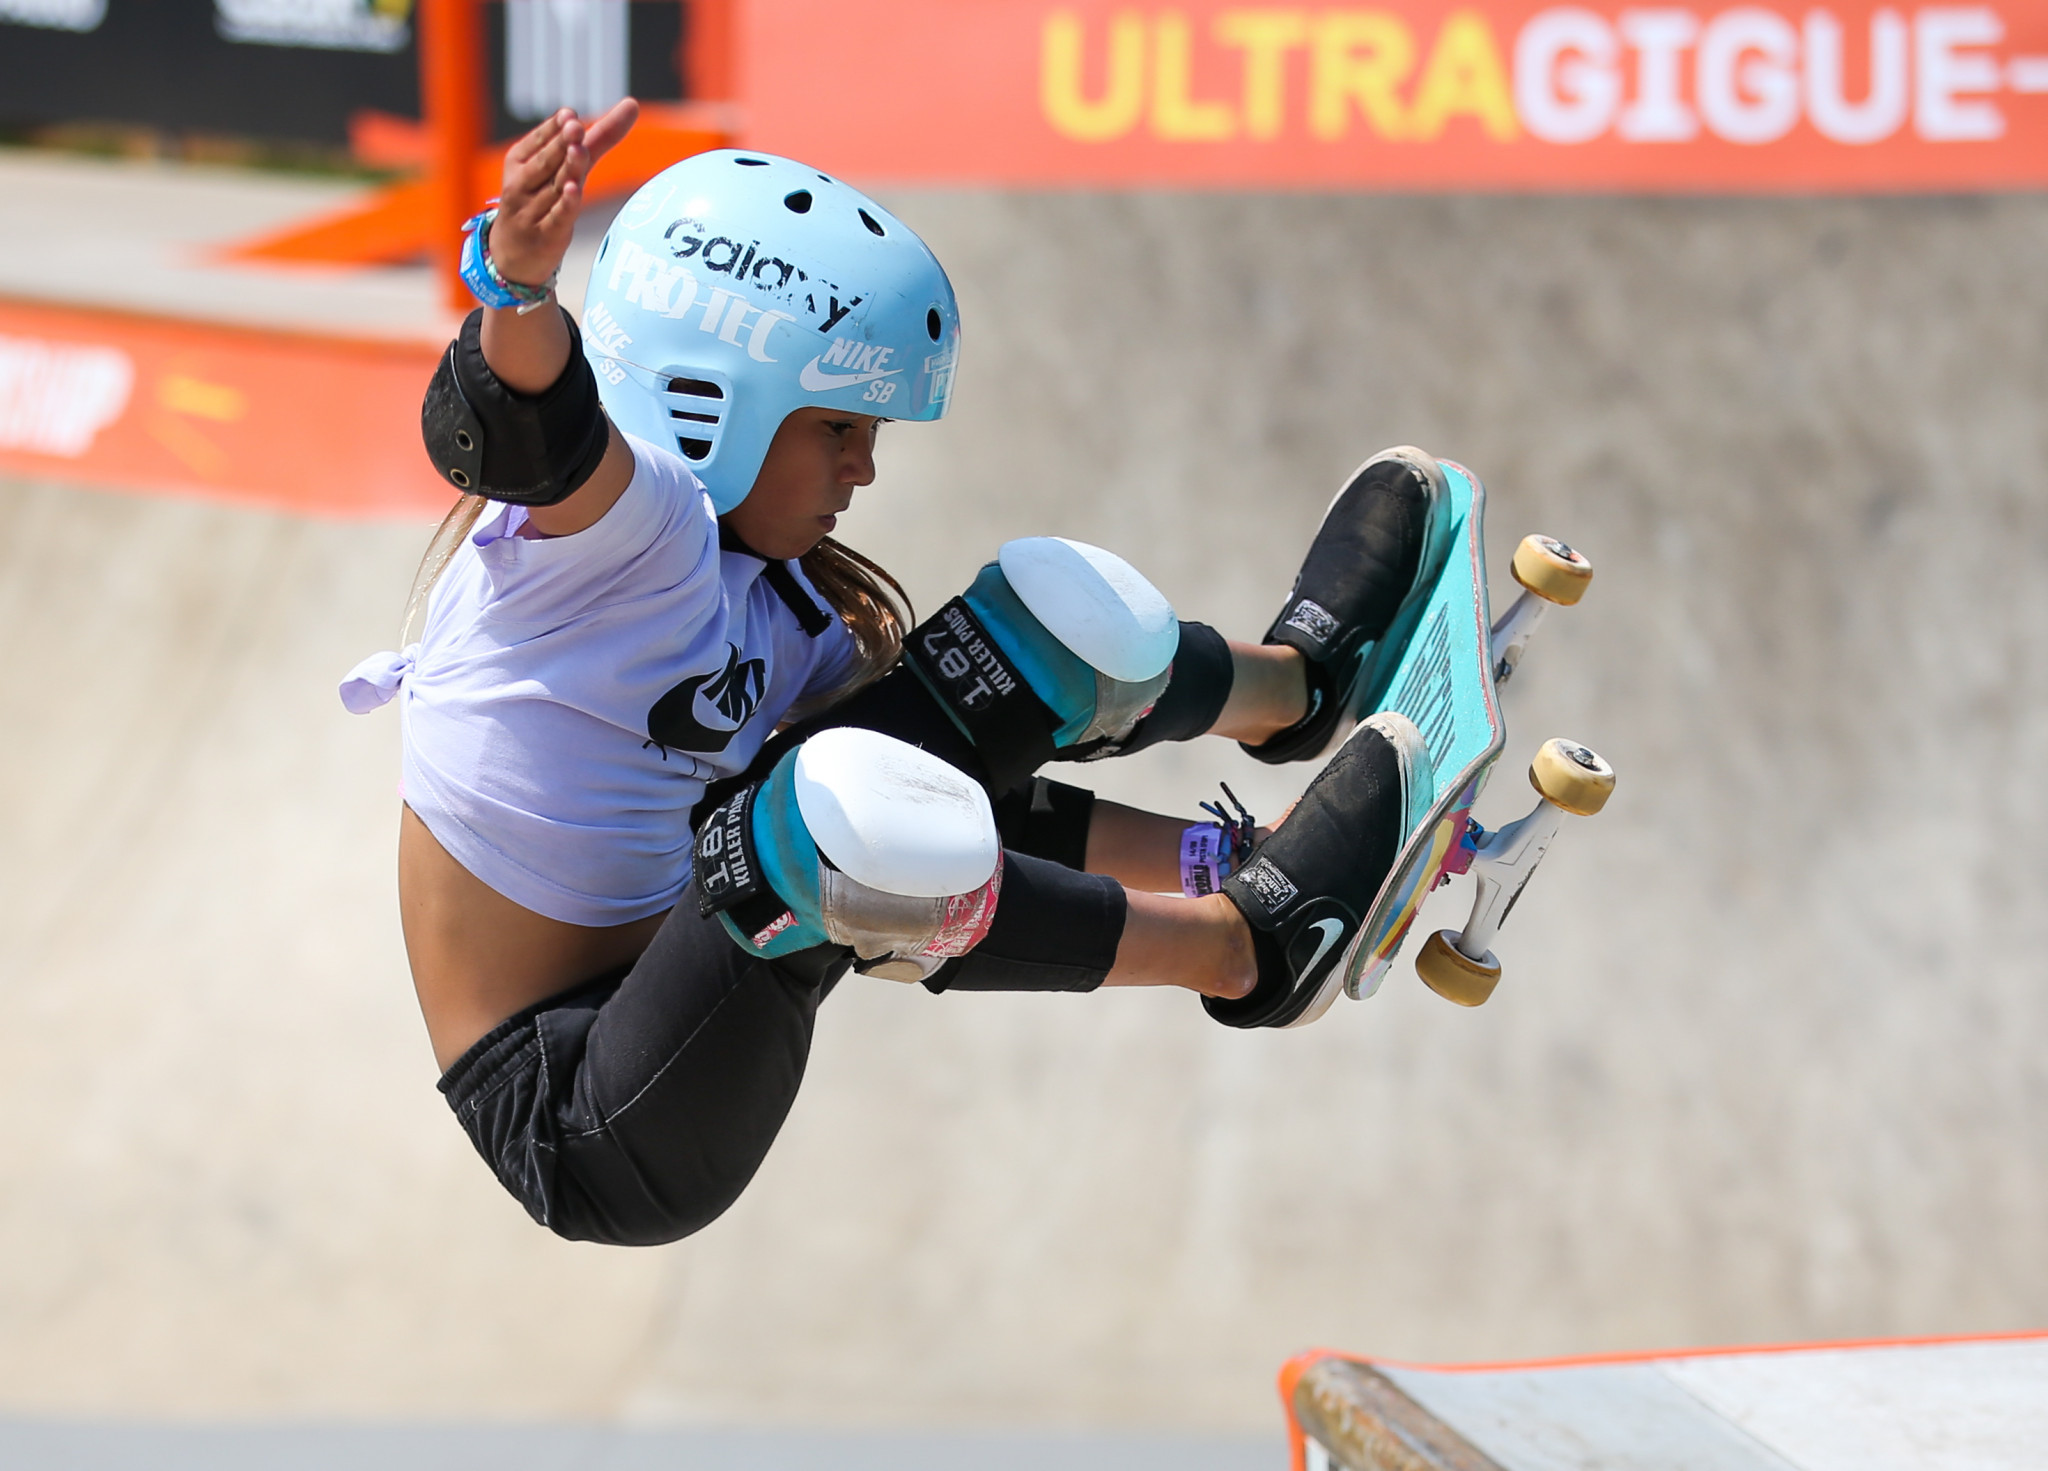 Eleven-year-old skateboard phenomenon Sky Brown is in the British squad ©Getty Images